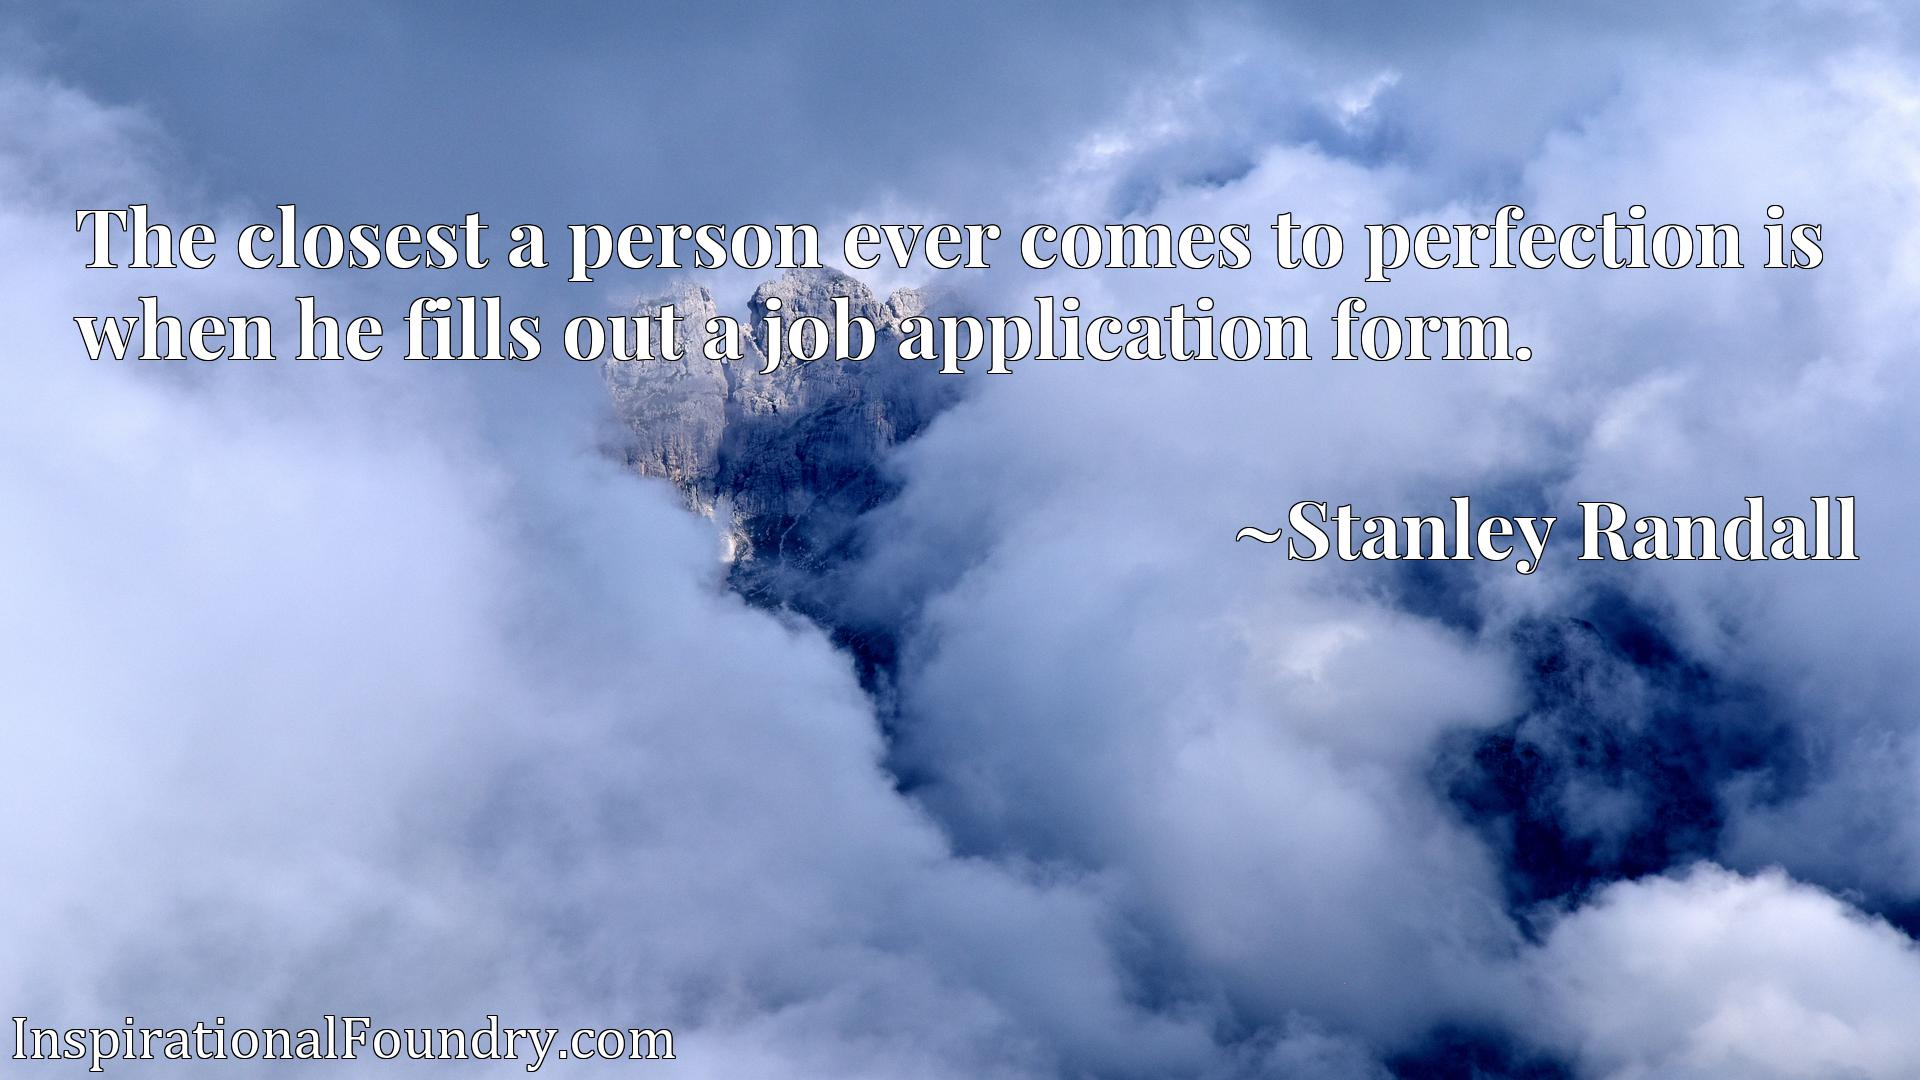 The closest a person ever comes to perfection is when he fills out a job application form.